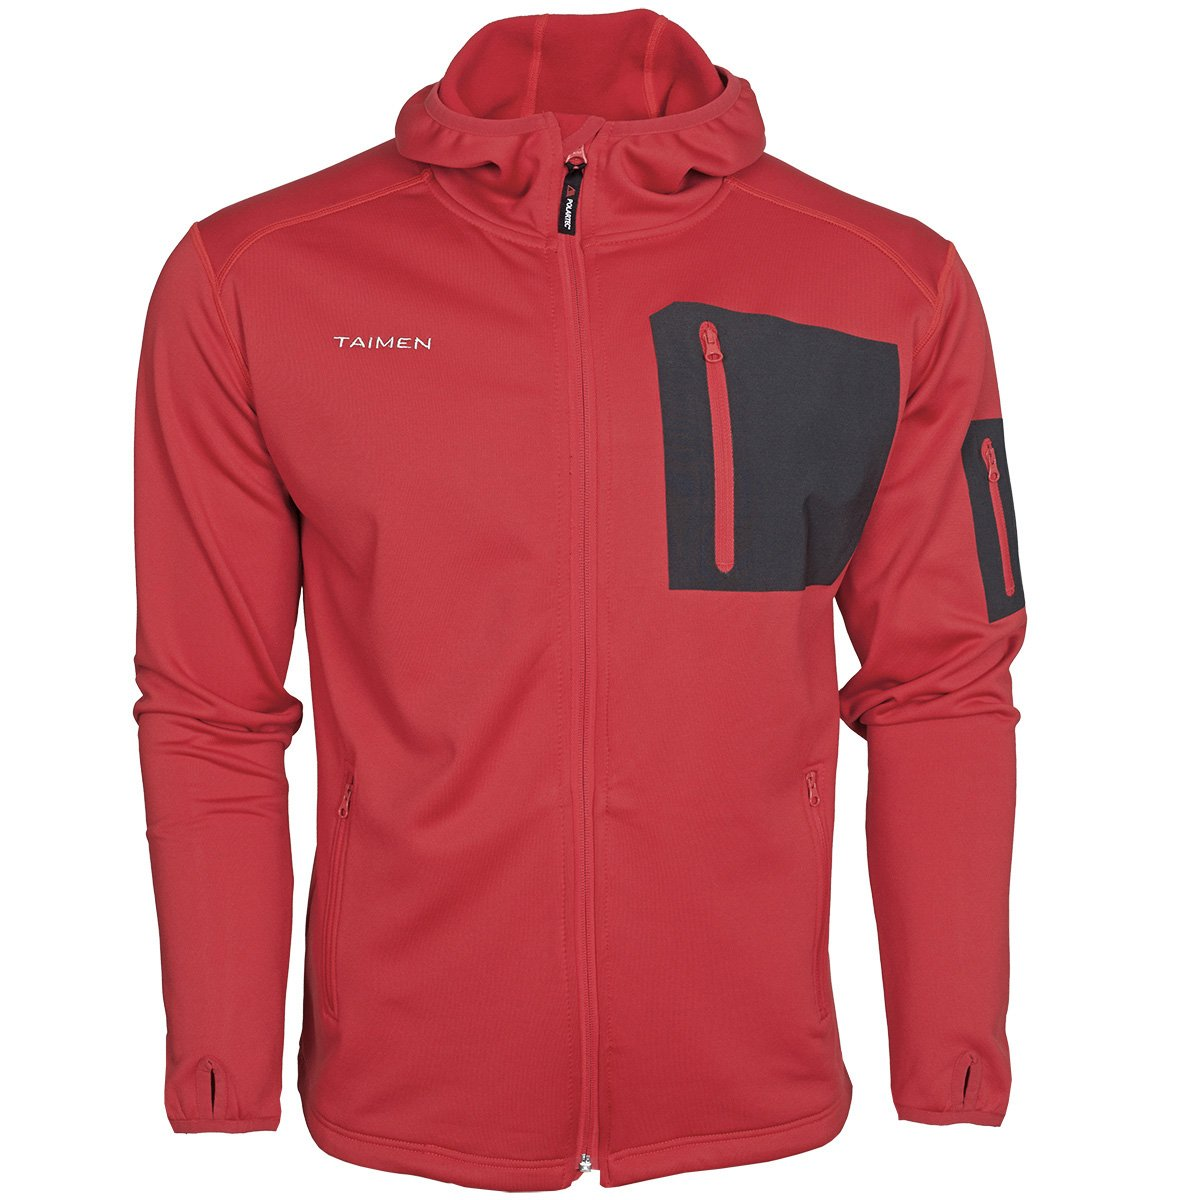 Taimen Polartec Power Stretch Hoody Jacket